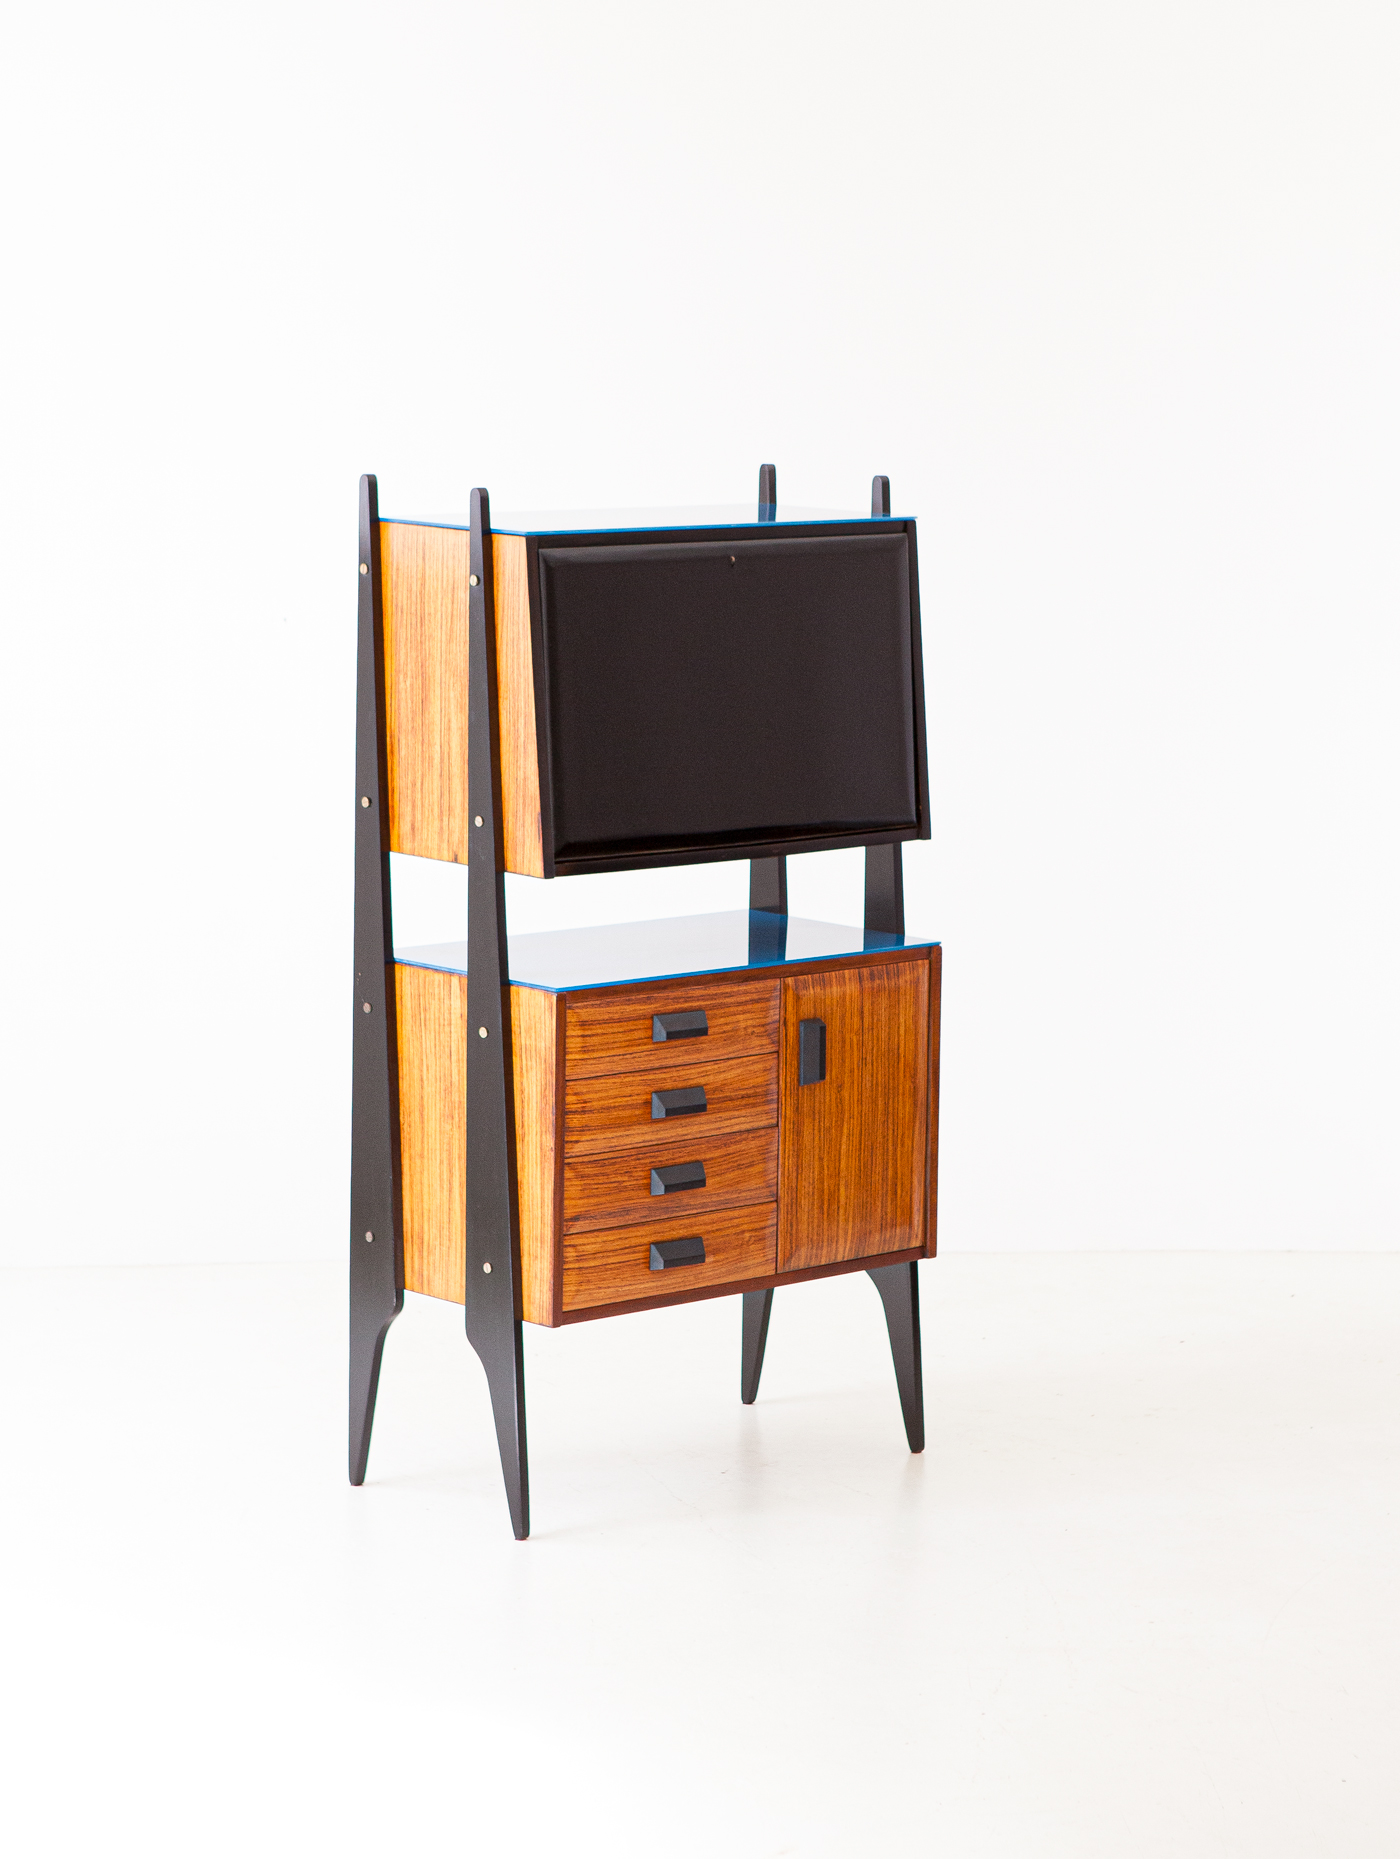 1950s-italian-rosewood-blue-glass-and-brass-credenza-with-bar-7-st122